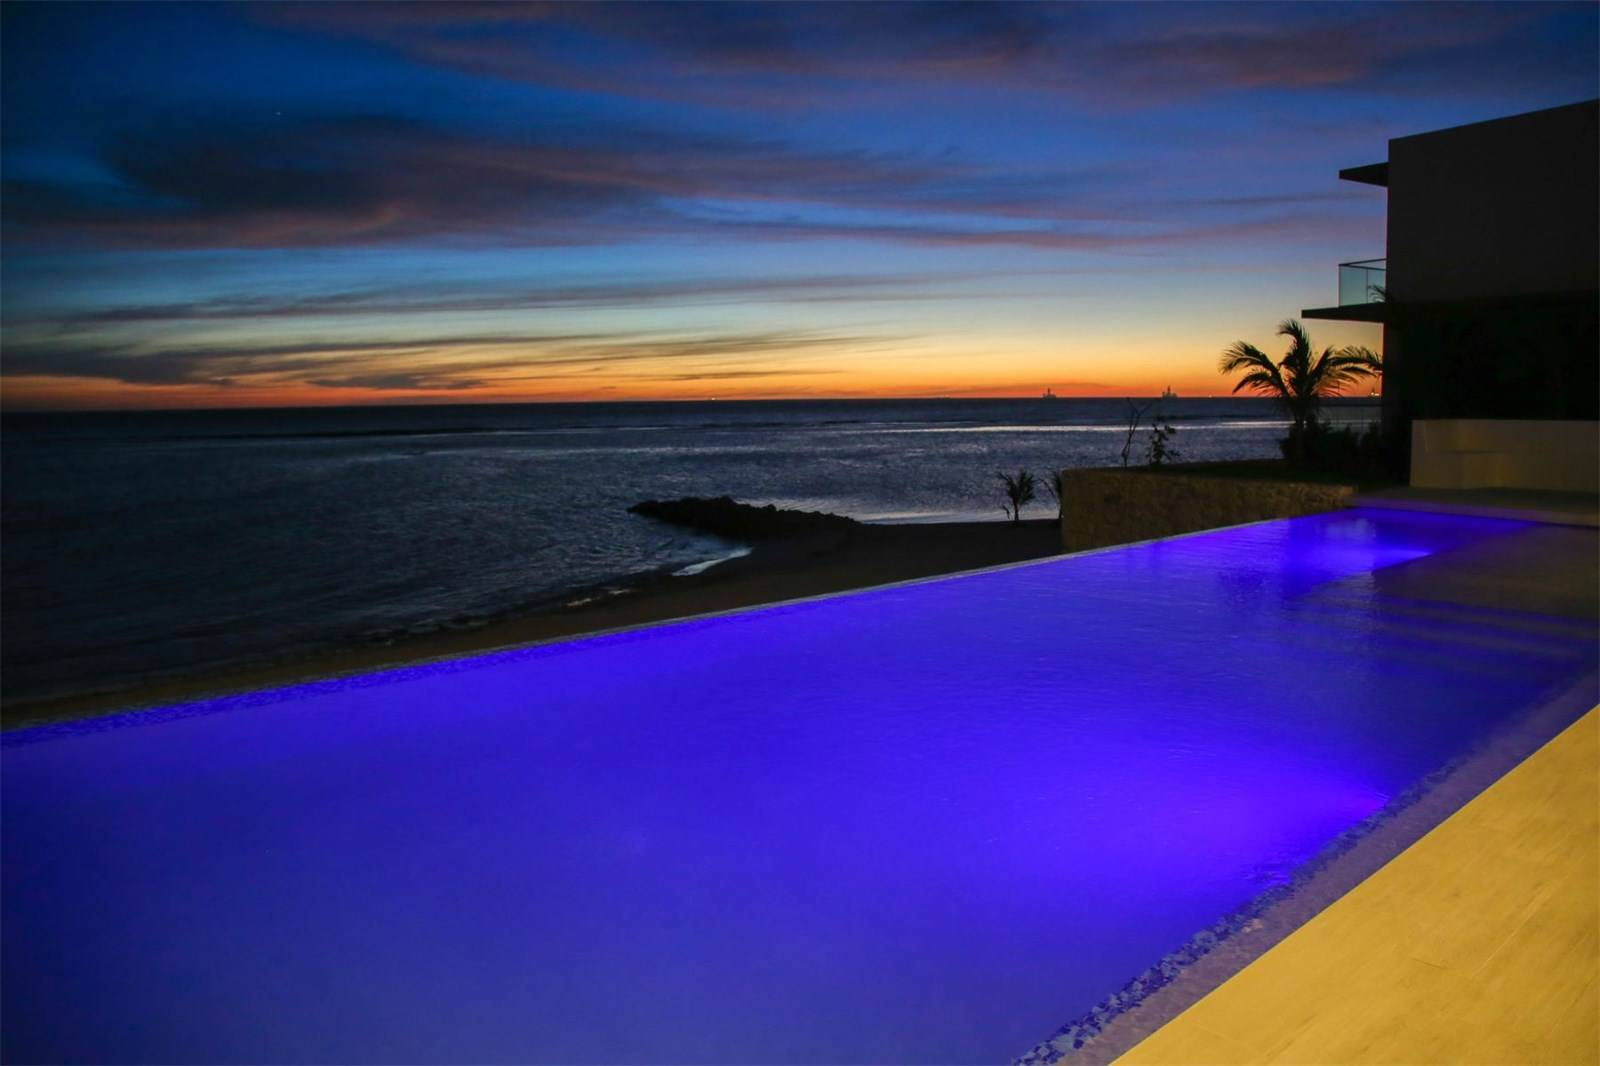 Aruba Beachfront Estate pool by night